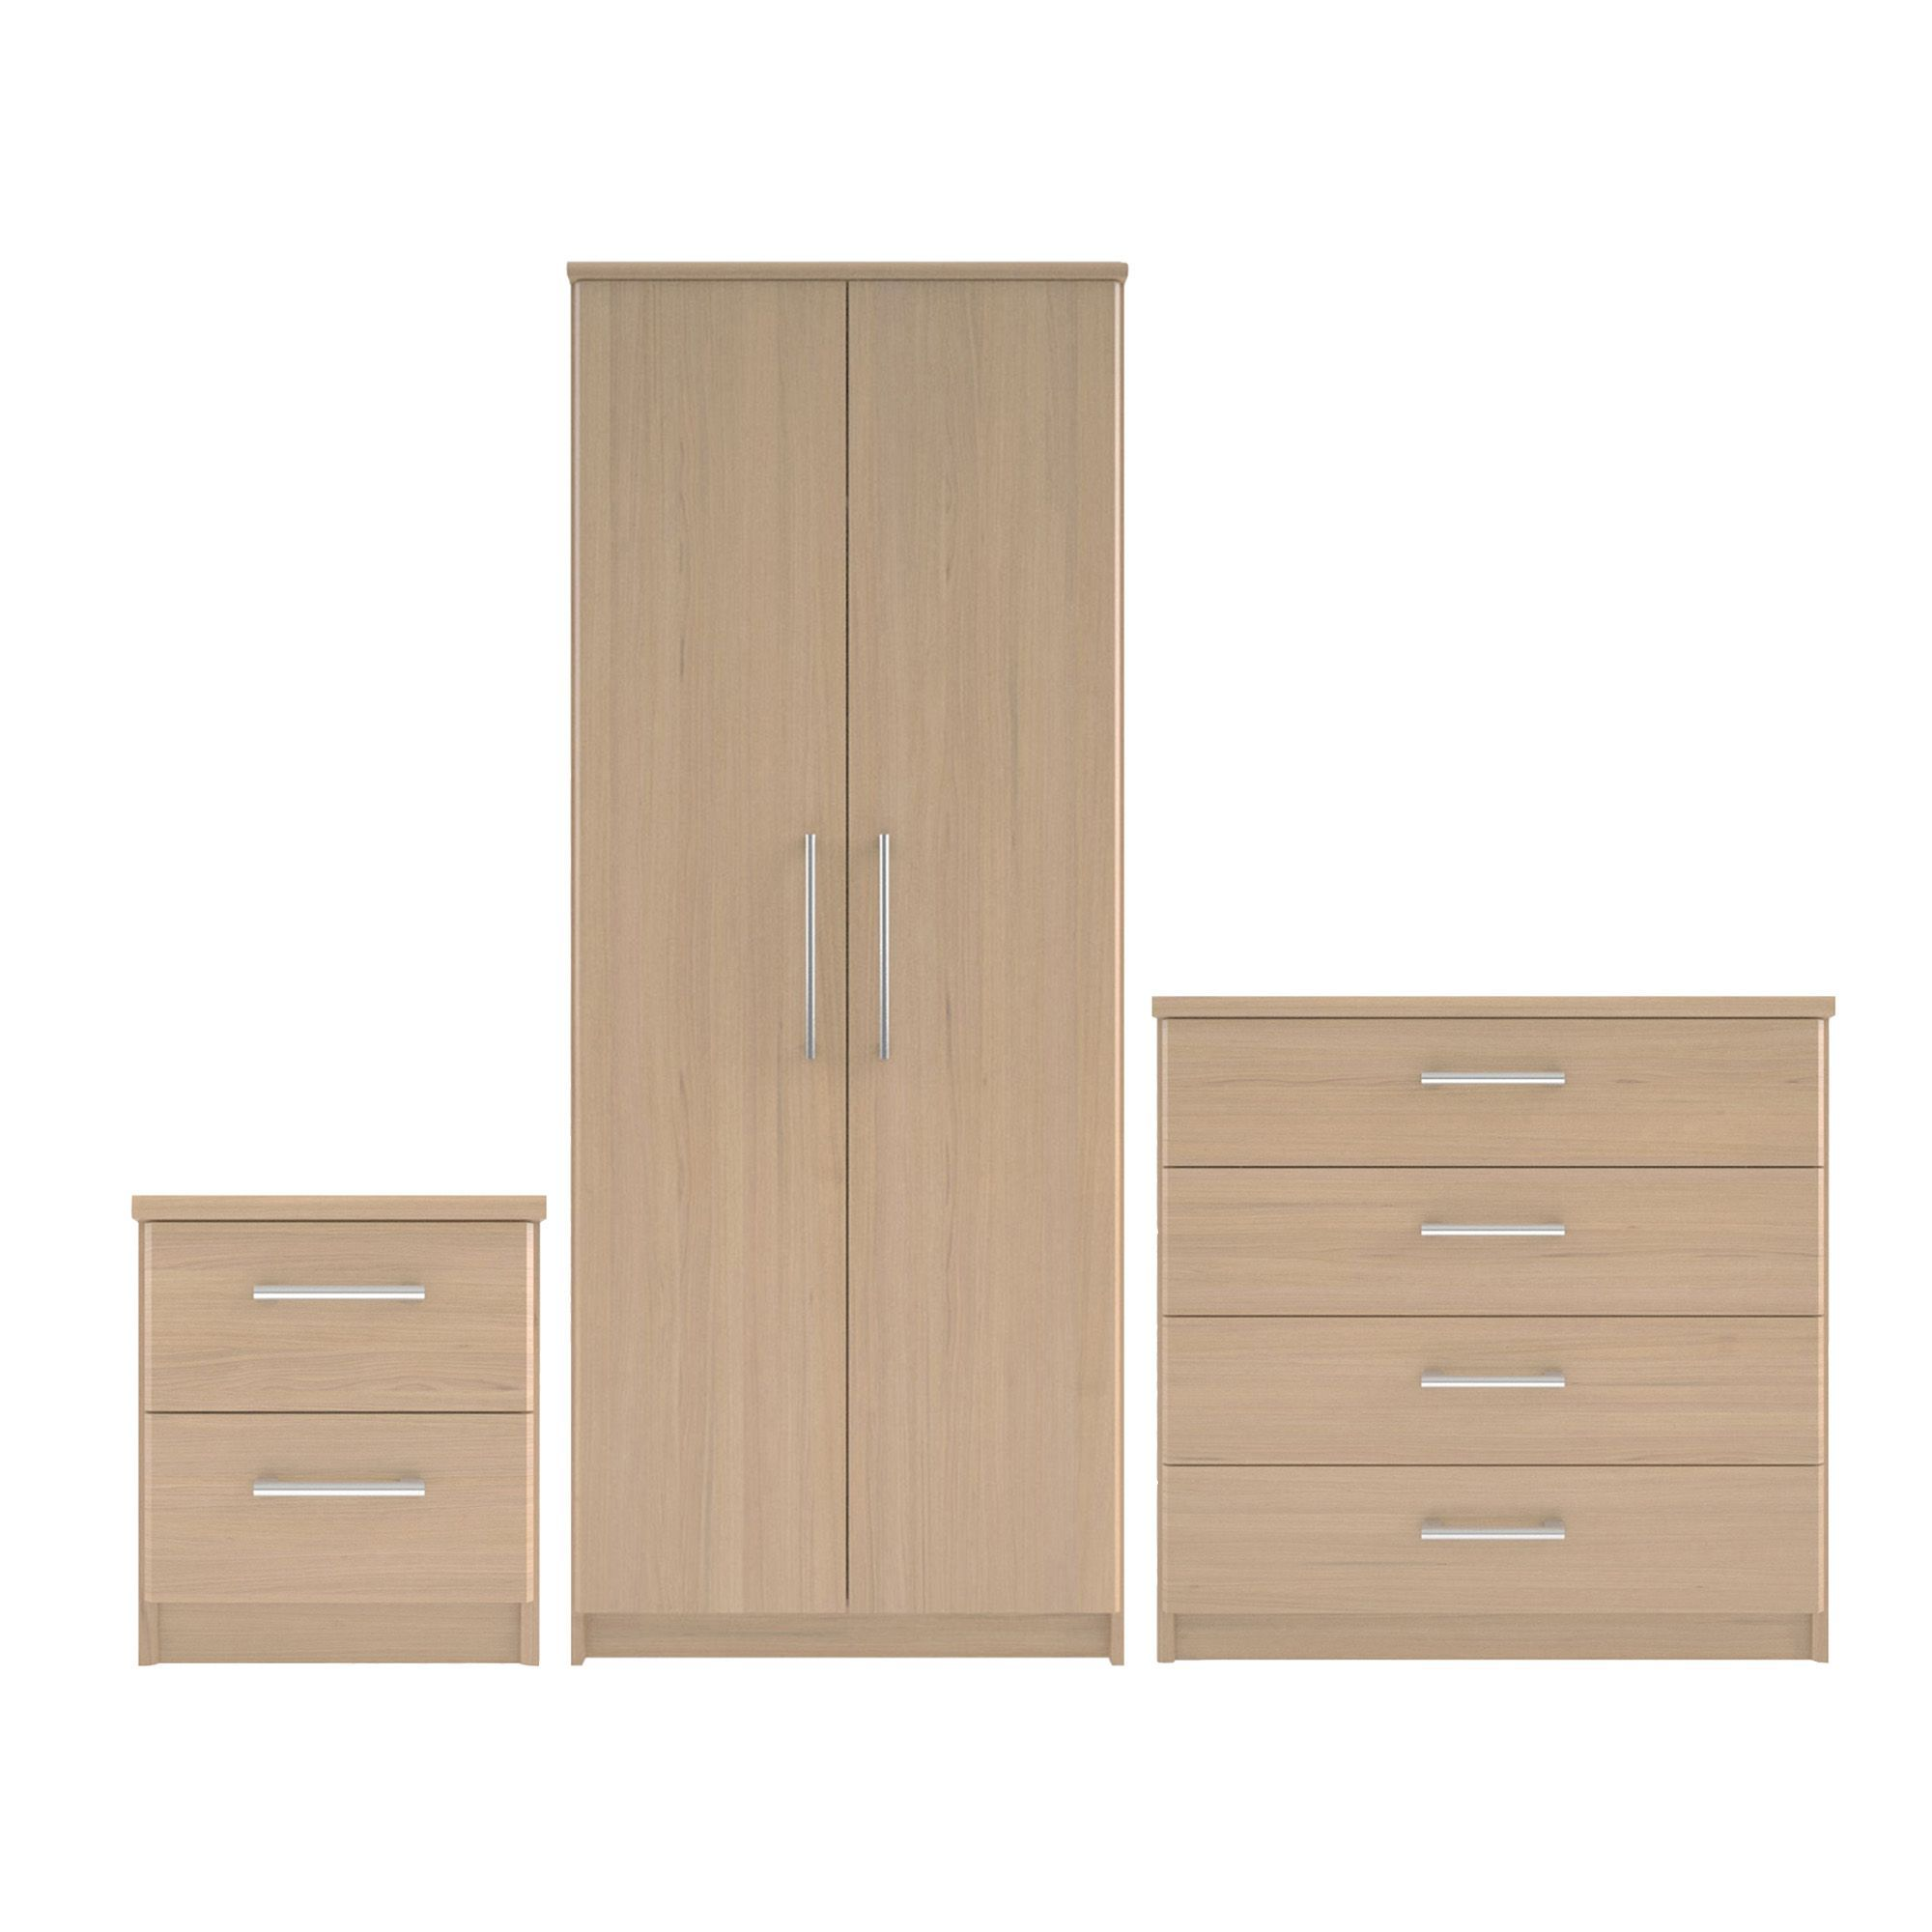 Elsey Matt Natural & Oak Effect 3 Piece Bedroom Furniture Set